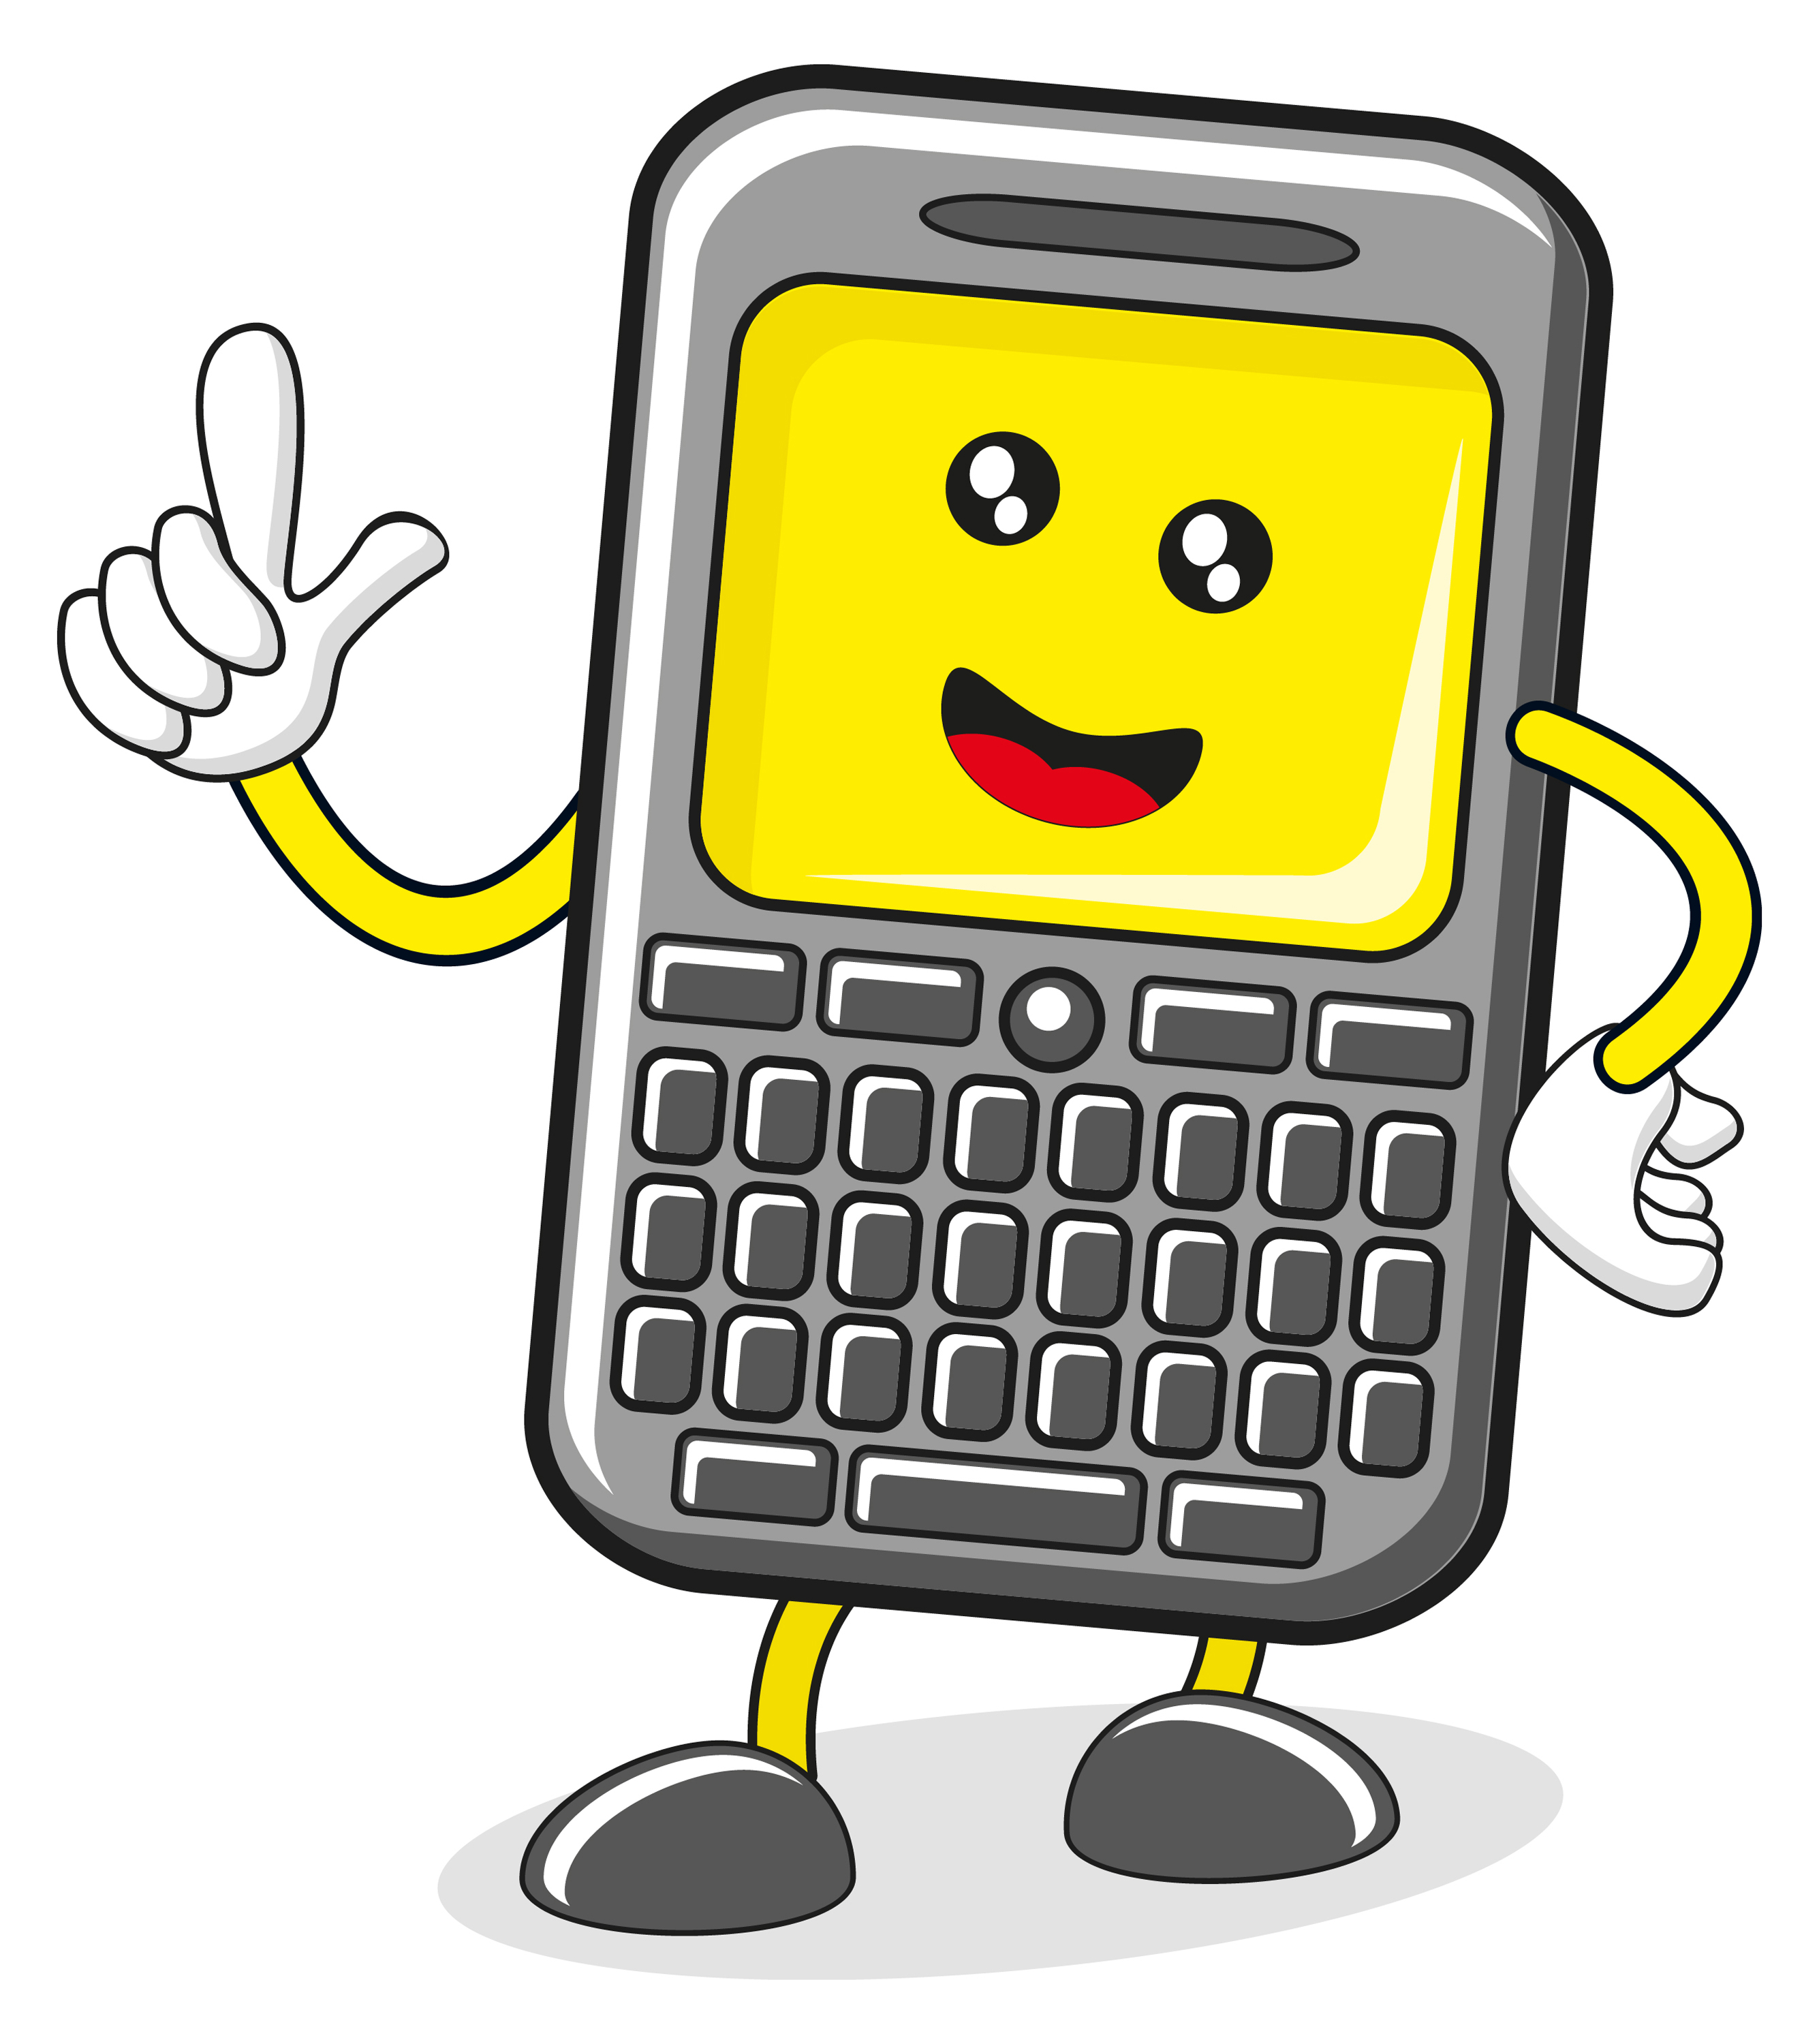 Cartoon mobile phone clipart vector royalty free download Cartoon Pictures Of Cell Phones | Free download best Cartoon ... vector royalty free download